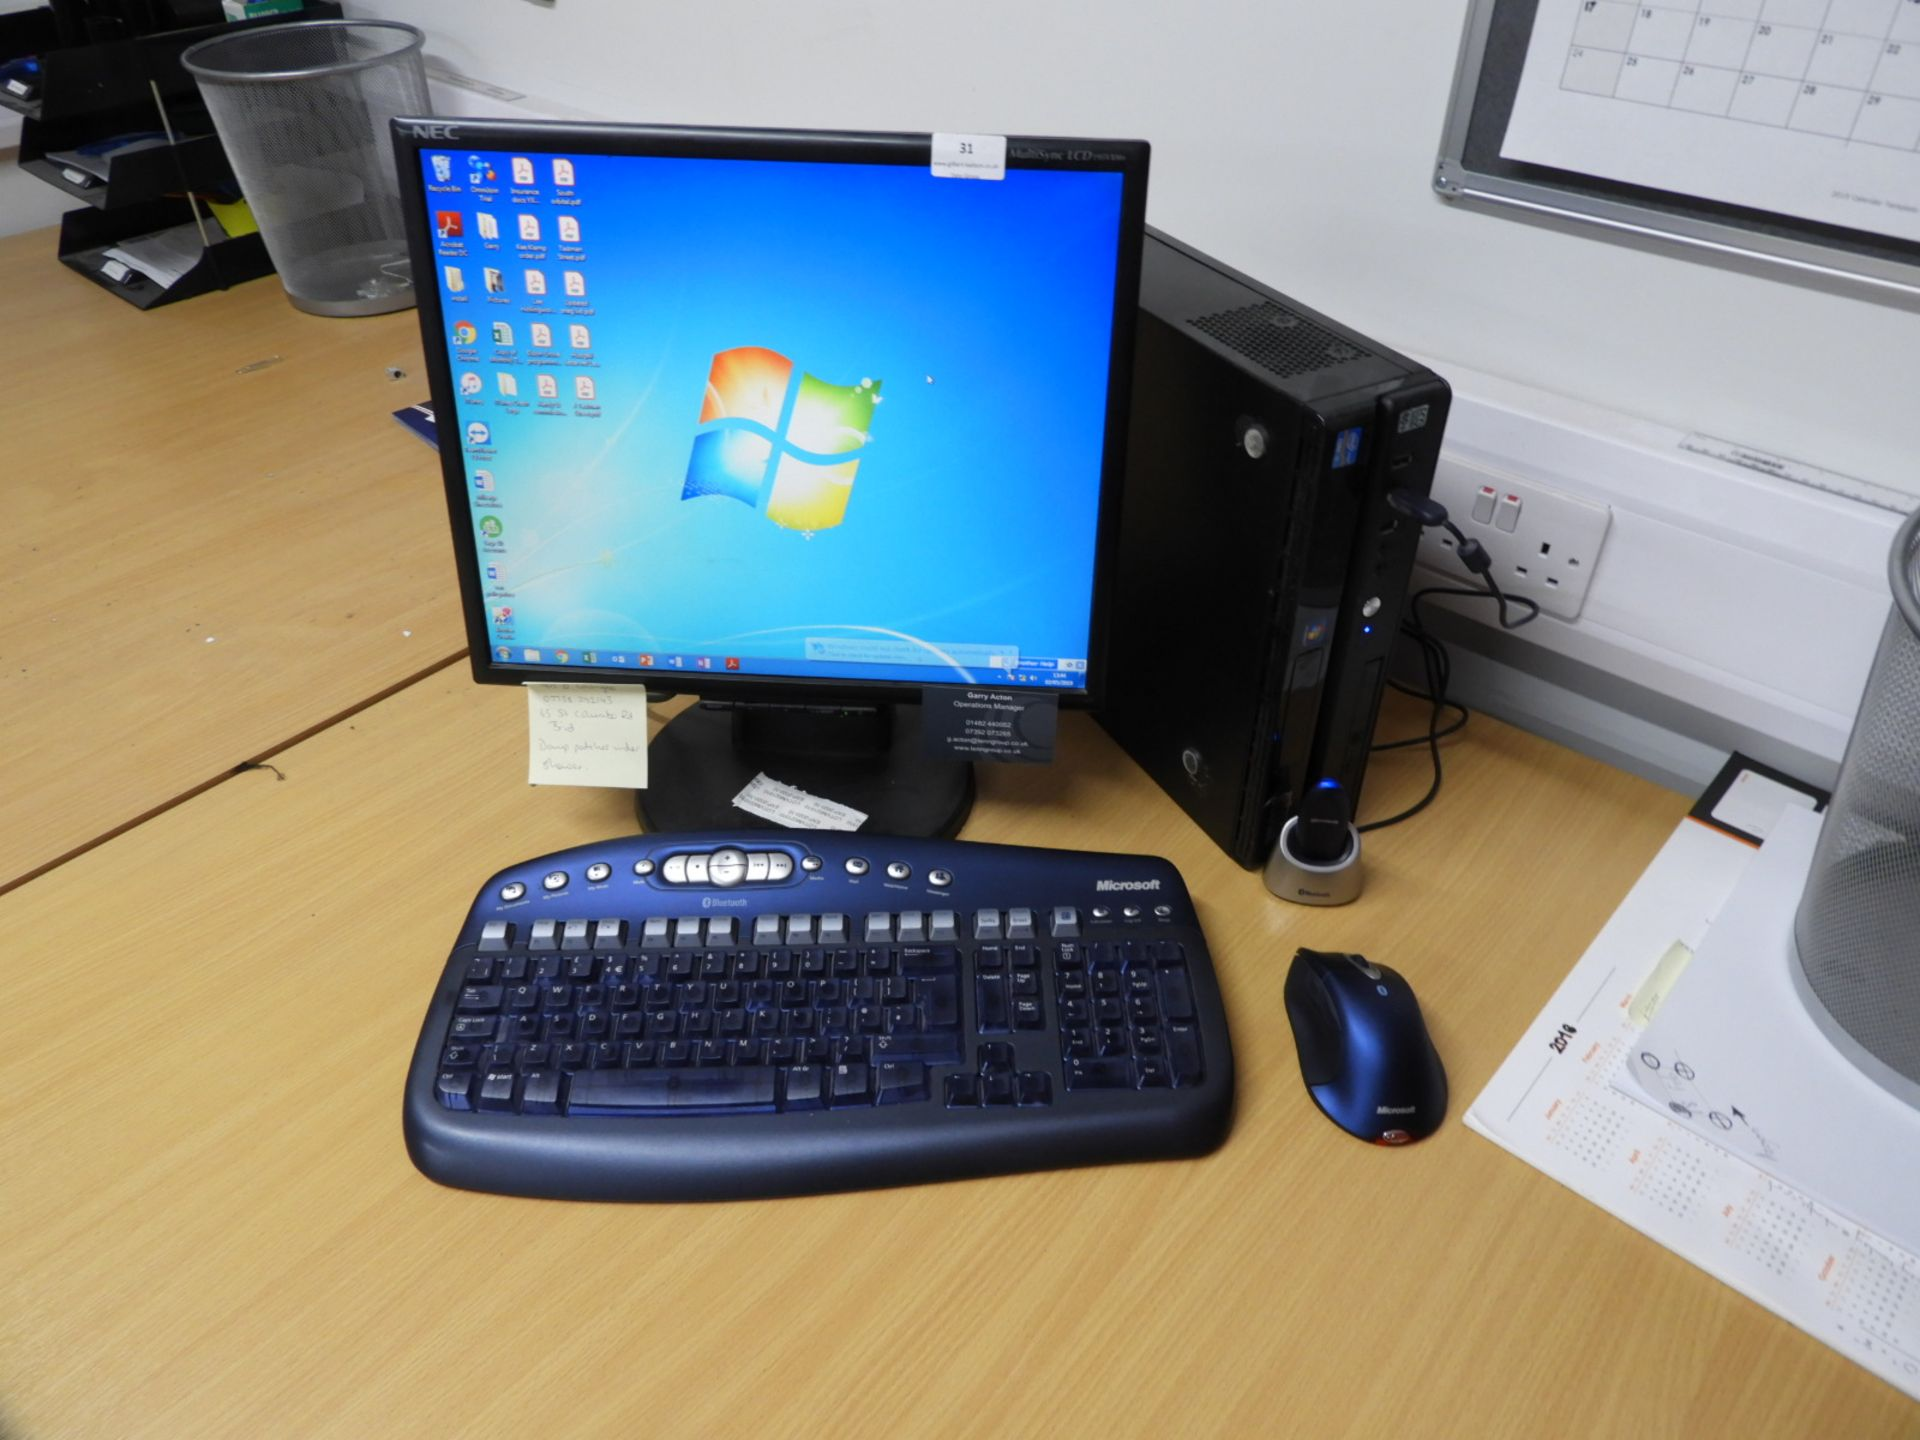 Lot 31 - *Stone Desktop PC with Windows 7 OS, Monitor, Cord